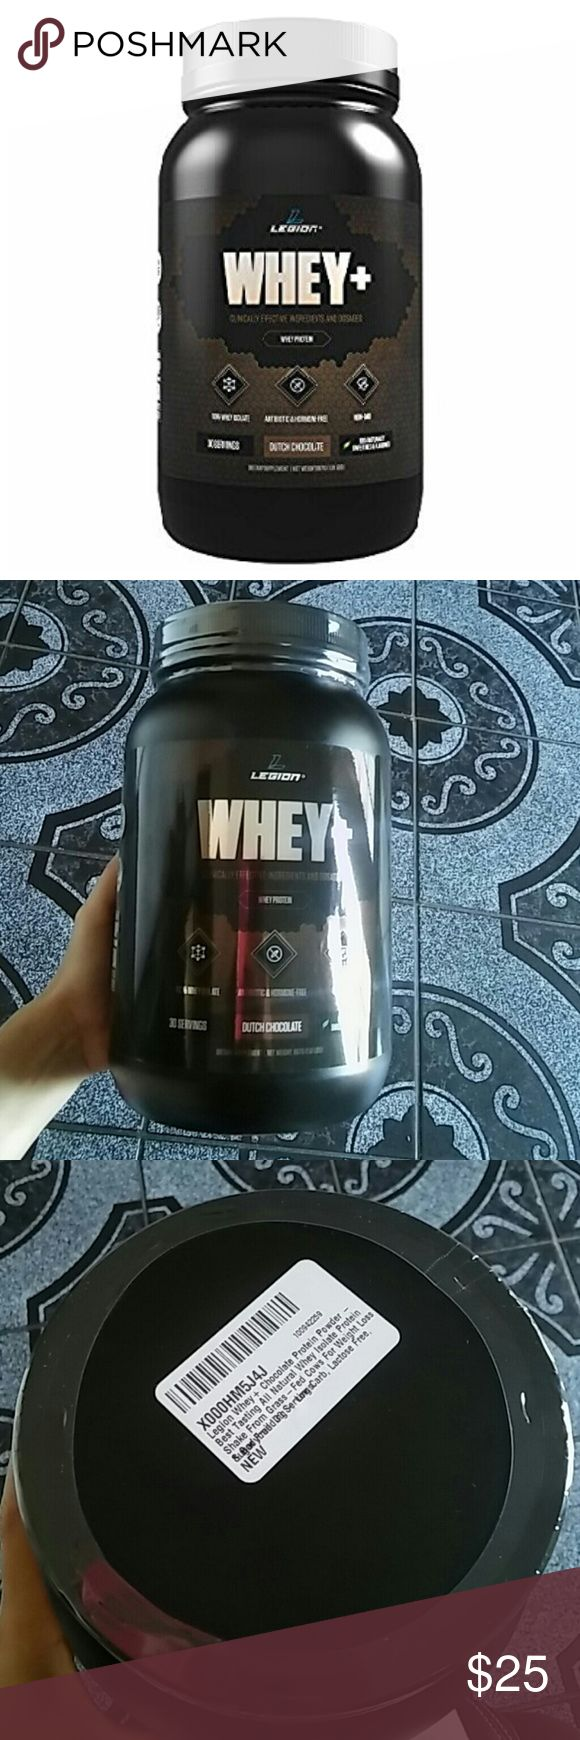 New Whey Protein ALL NATURAL WHEY ISOLATE: Make protein shakes that are sugar free and sweetened with stevia100% WHEY ISOLATE PROTEIN: Lean, lactose free, grass-fed whey isolate powder. Great for weight lossBEST PROTEIN FOR WEIGHT LOSS: Get lean faster with this low-carb & low-fat protein with no sugarBEST TASTING PROTEIN POWDER 100% all natural whey isolate protein powder. Scoop included FOR MEN AND WOMEN 1.91 LBS new and sealed Other